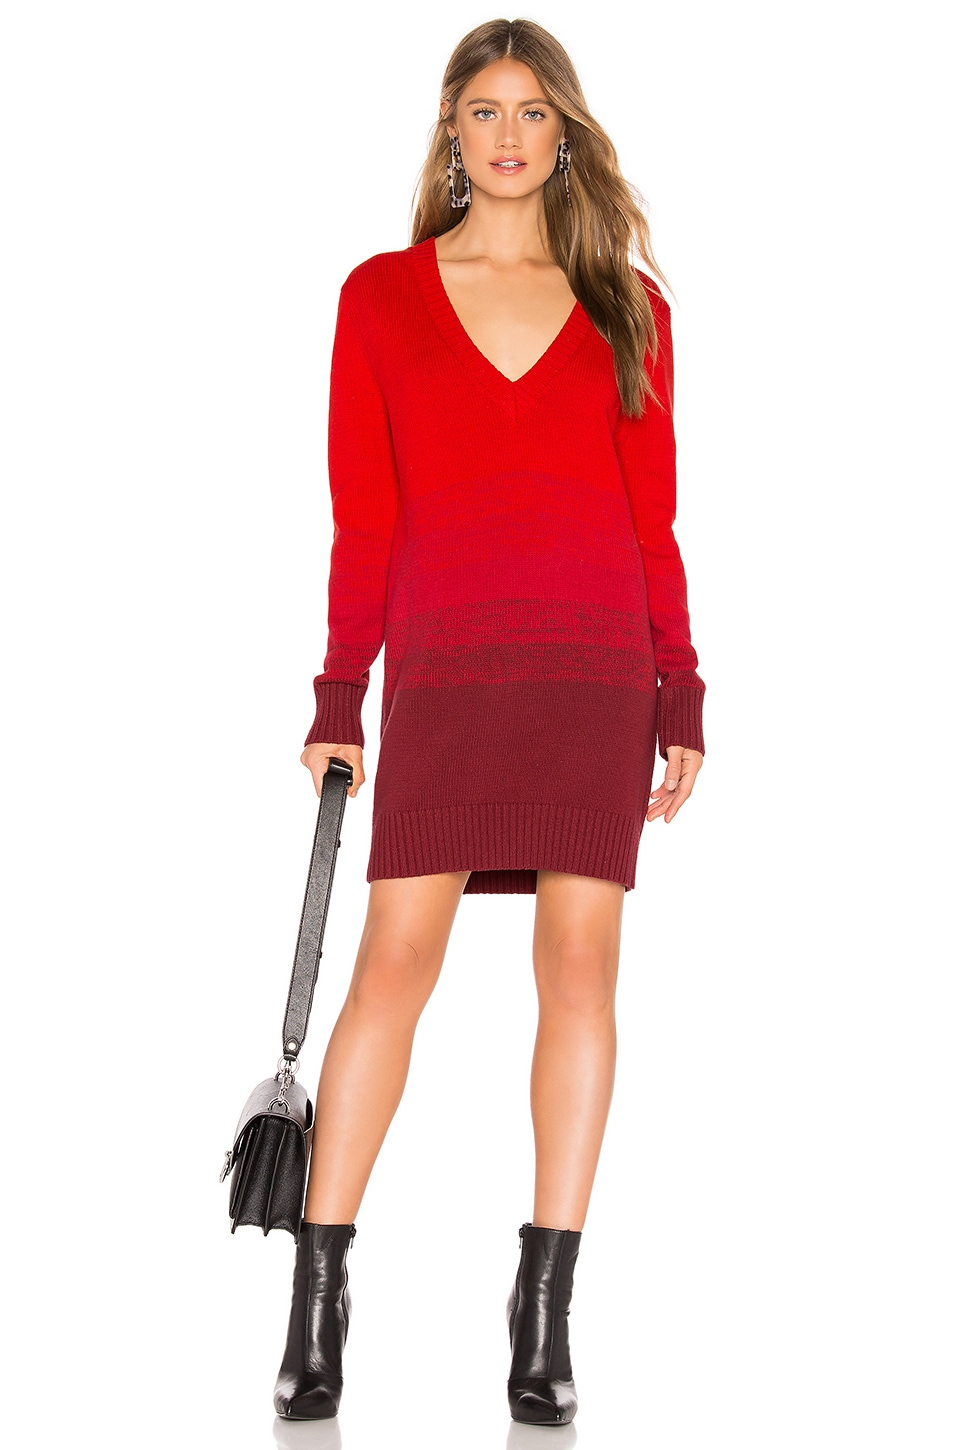 Lovers + Friends Rocket Sweater Dress in Red Ombre